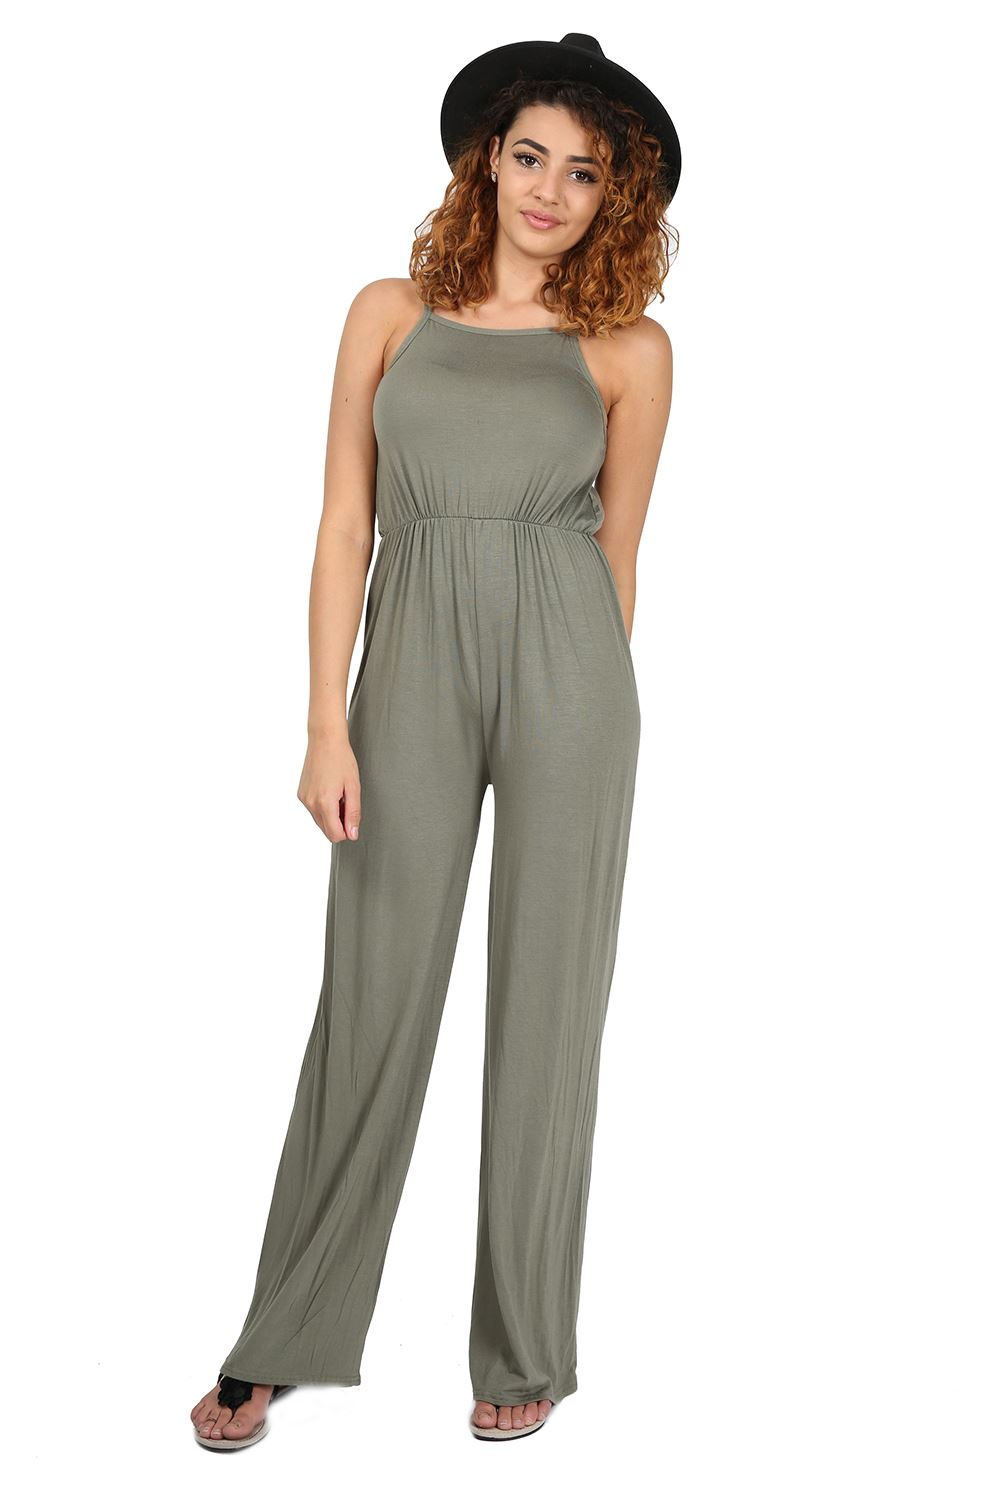 Original Thankfully, Weve Rounded Up 14 Jumpsuits That Will Keep You Feeling Stylish And Looking Great While Getting In On This Lowmaintenance Trend Keep Reading To See All The Options Related You Asked,